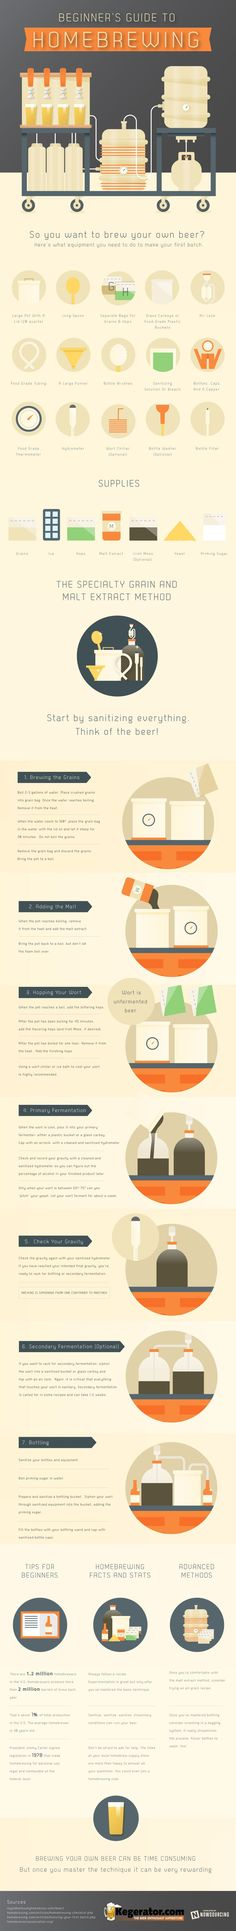 Brewing your own beer can be confusing for a beginner. Here's an infographic that will guide beginners through the brewing process. #homebrewing